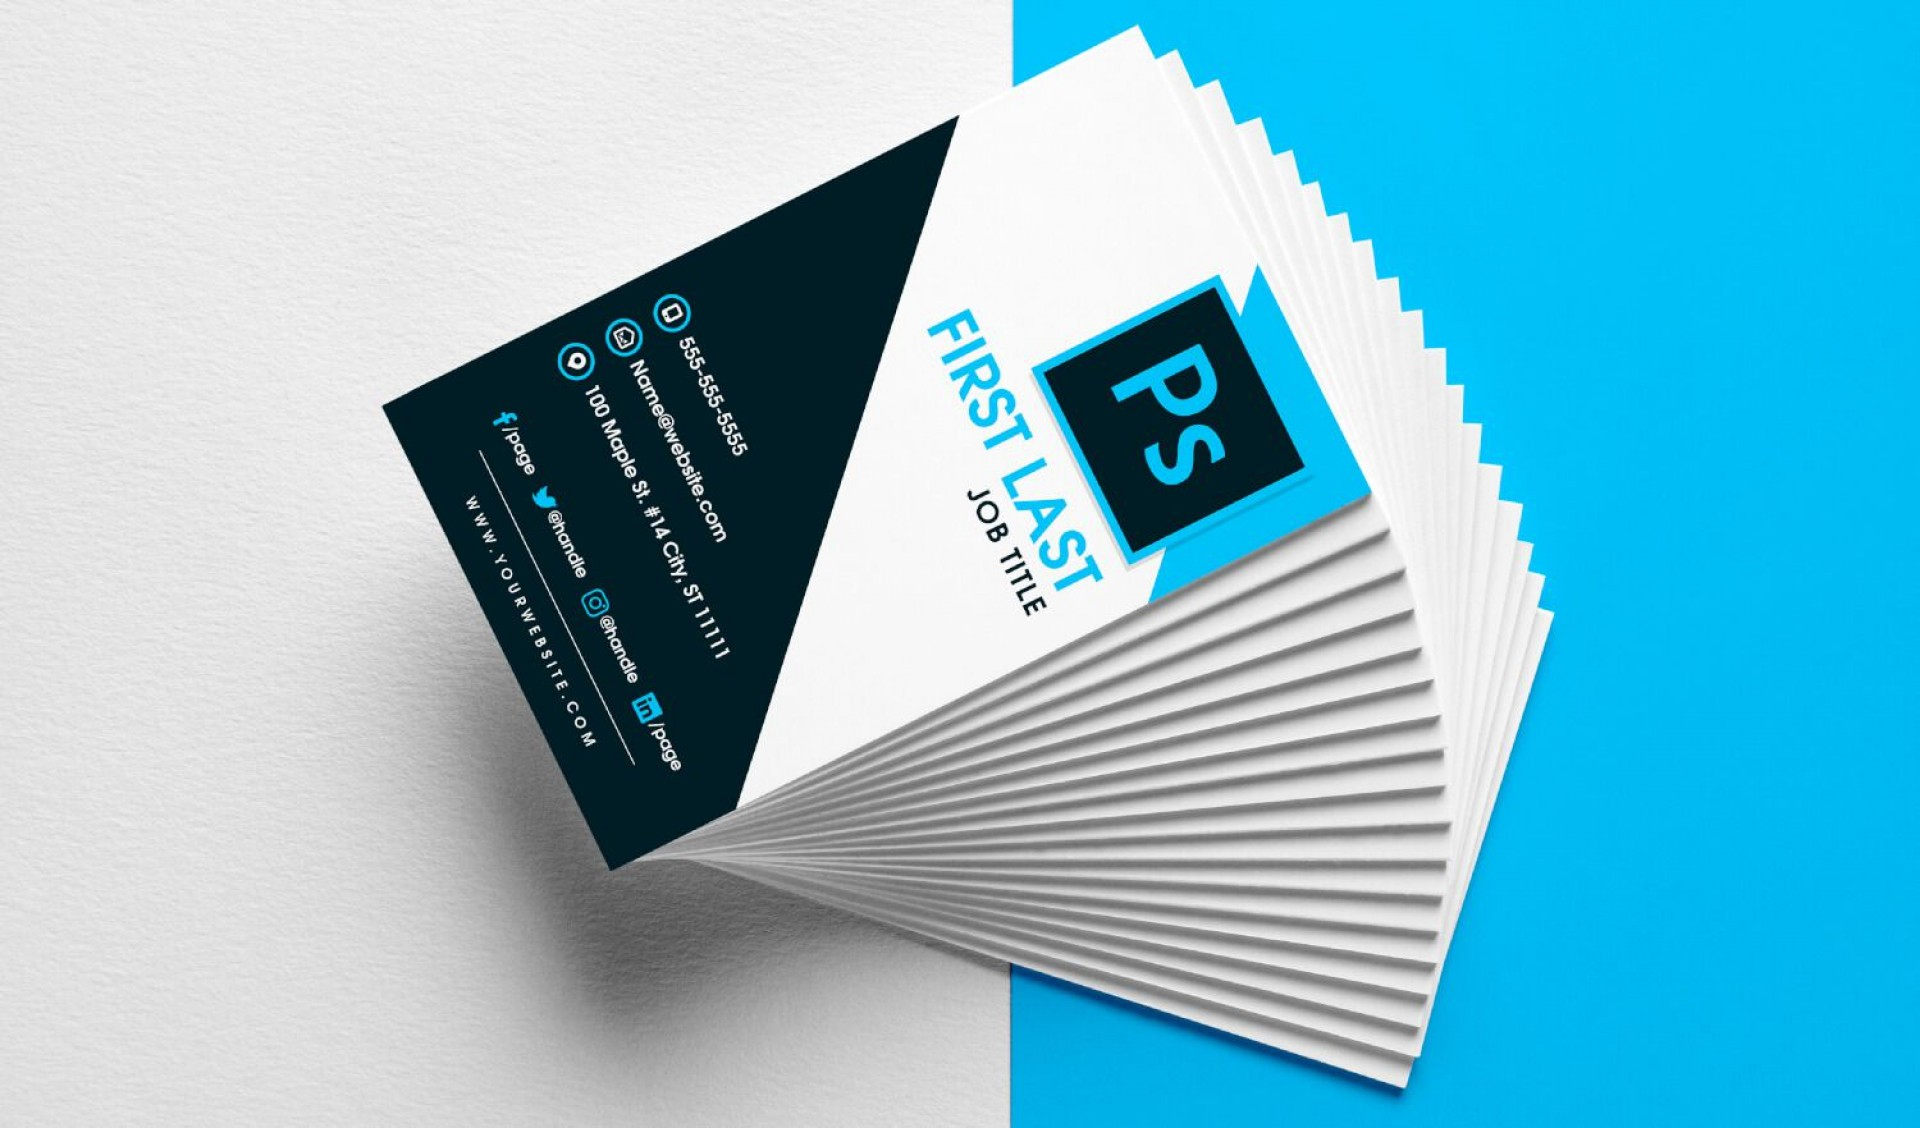 007 Stupendou Free Blank Busines Card Template Photoshop Inspiration  Download Psd1920